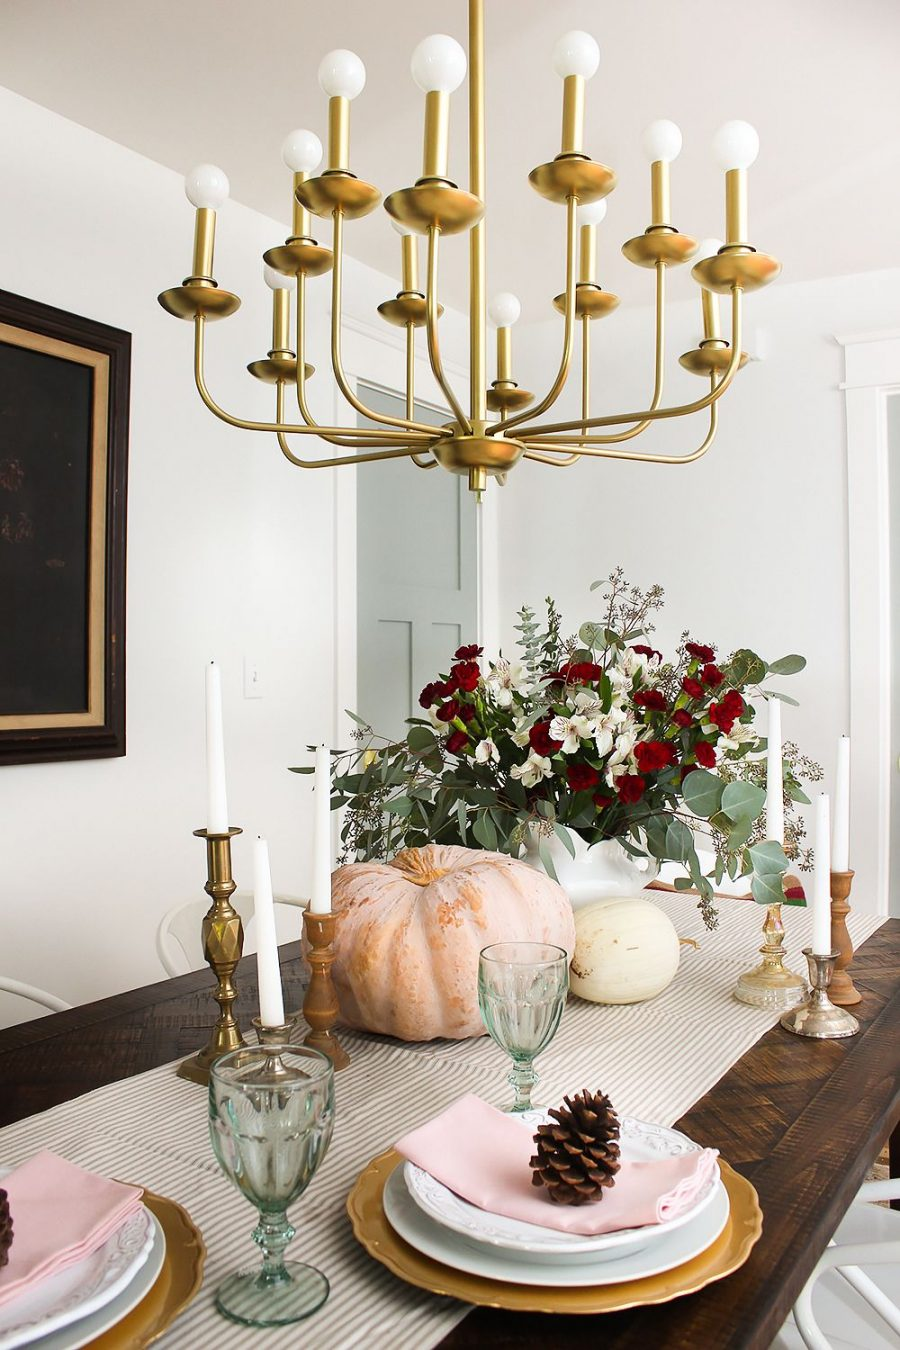 Thanksgiving Décors That Will Fill Your Heart With Joy! thanksgiving décors Thanksgiving Décors That Will Fill Your Heart With Joy! 1 10